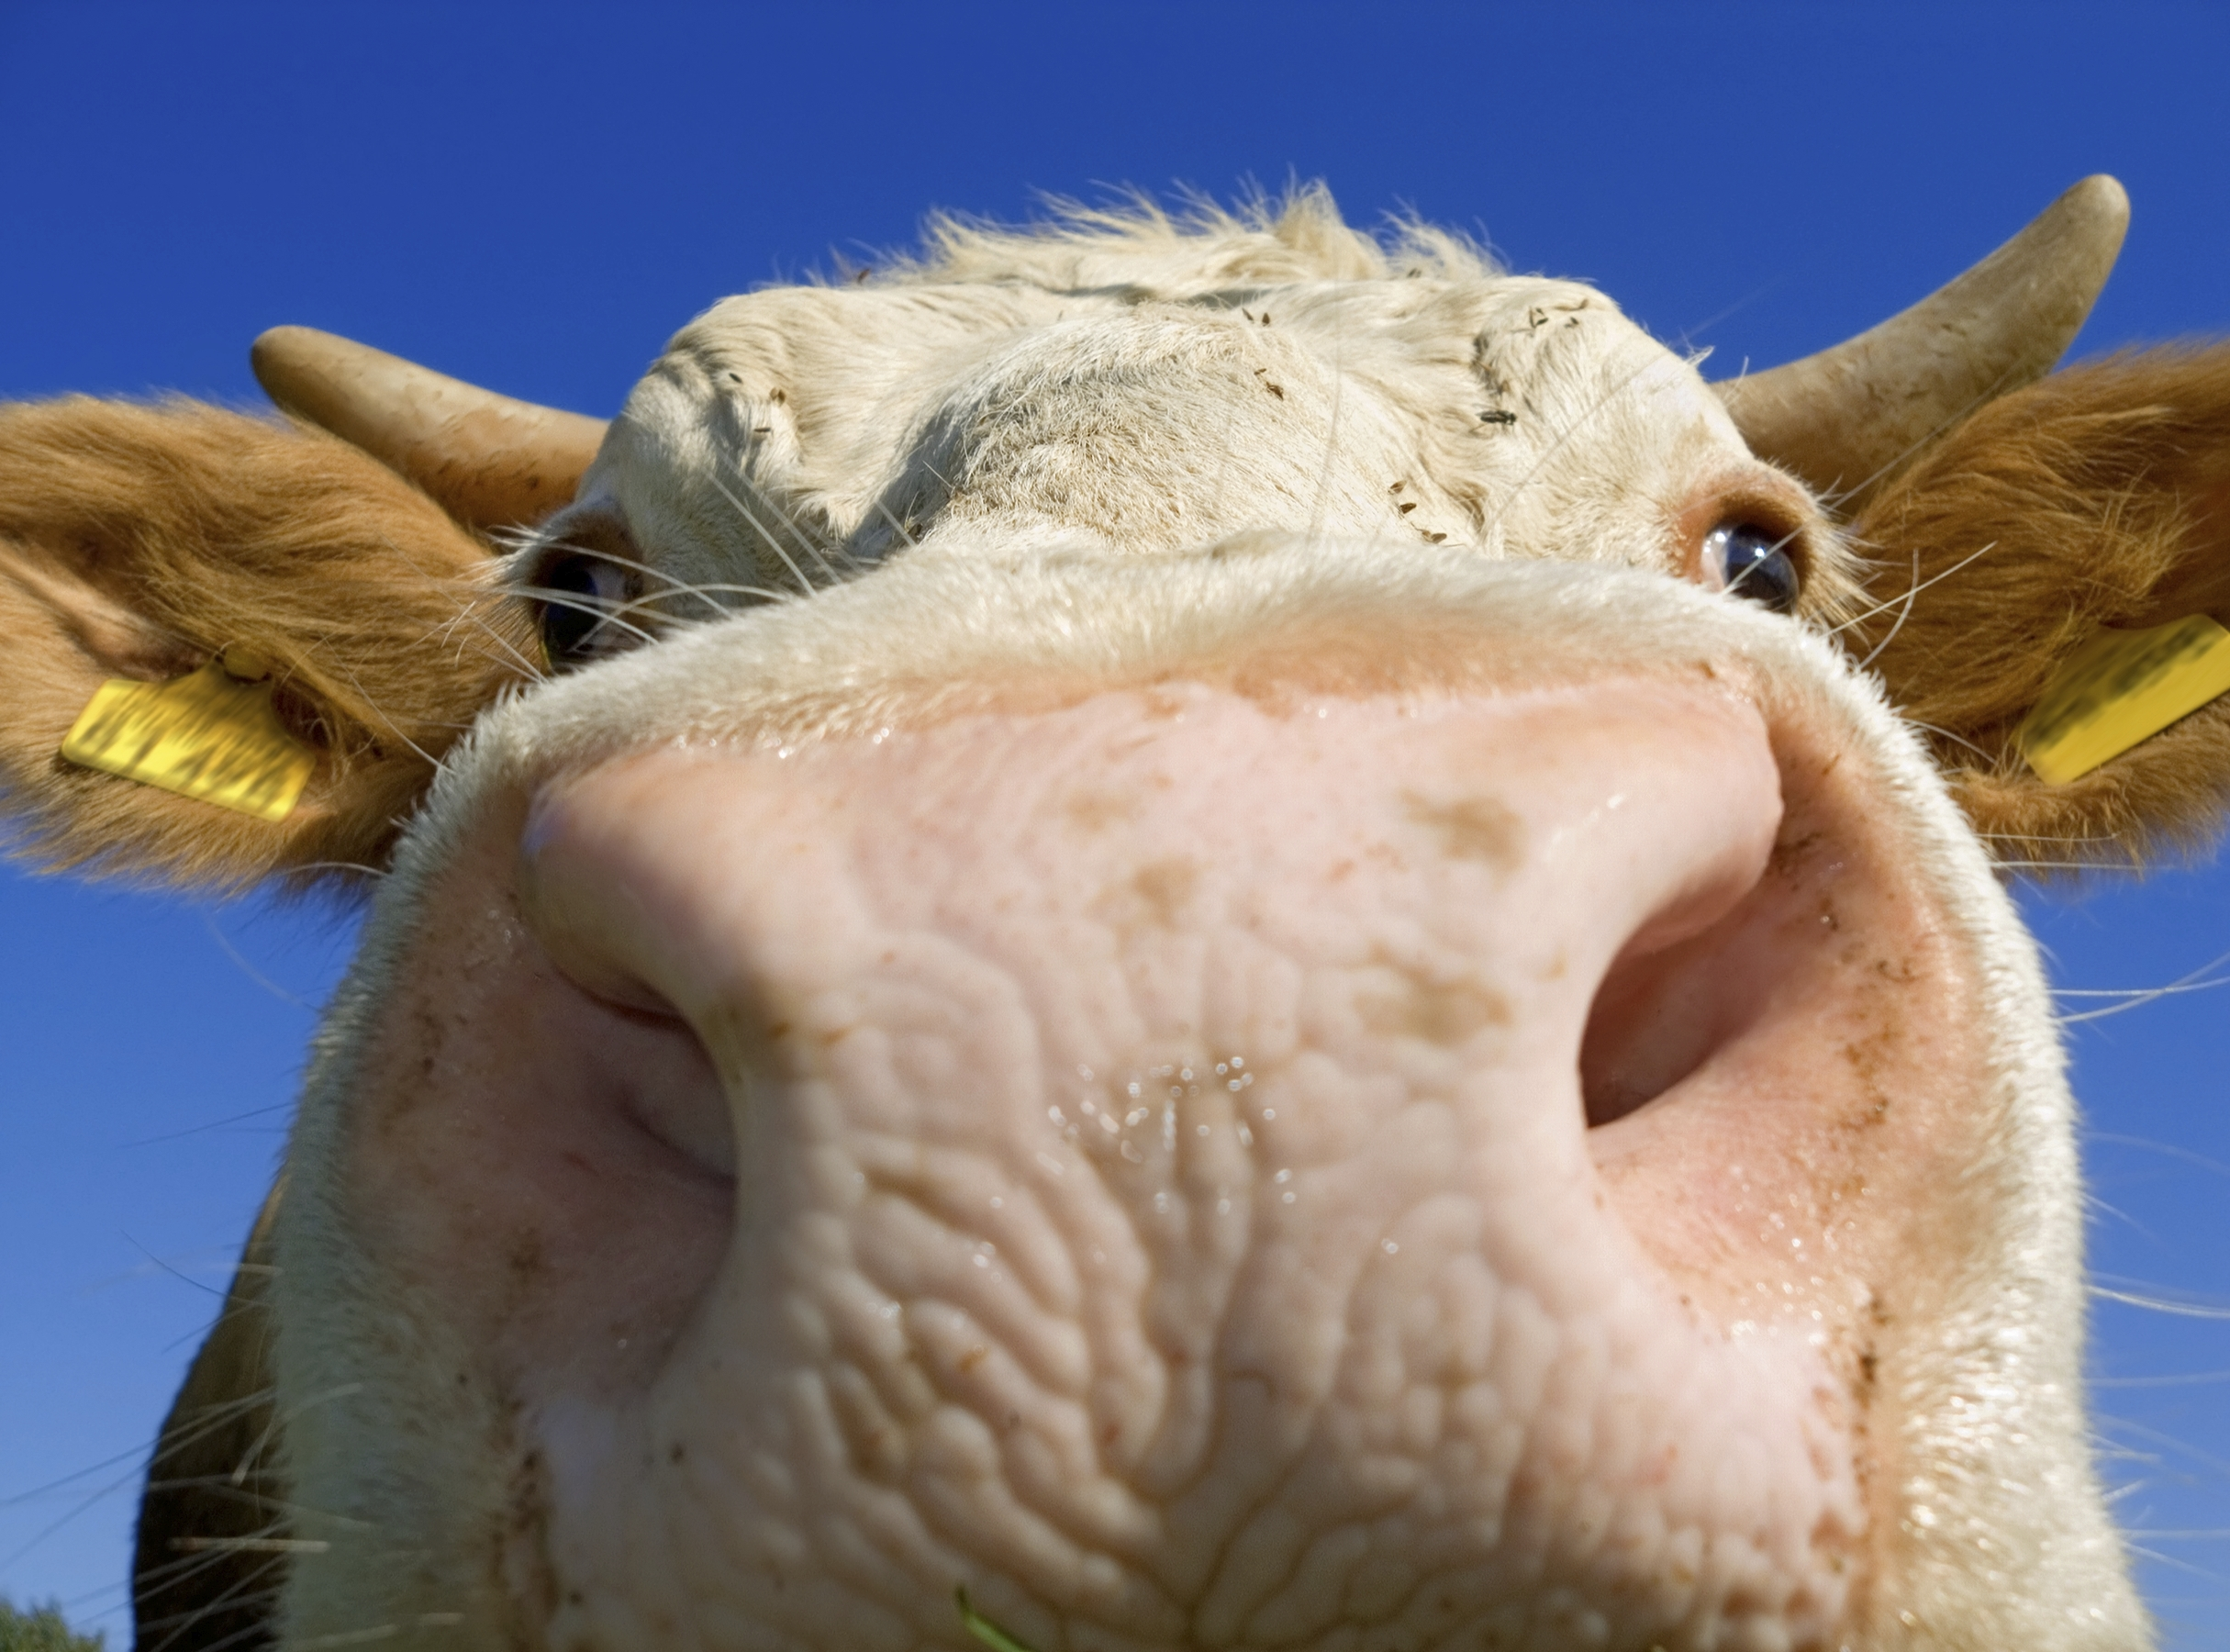 Beef Cow close up 2300932_Medium.jpg